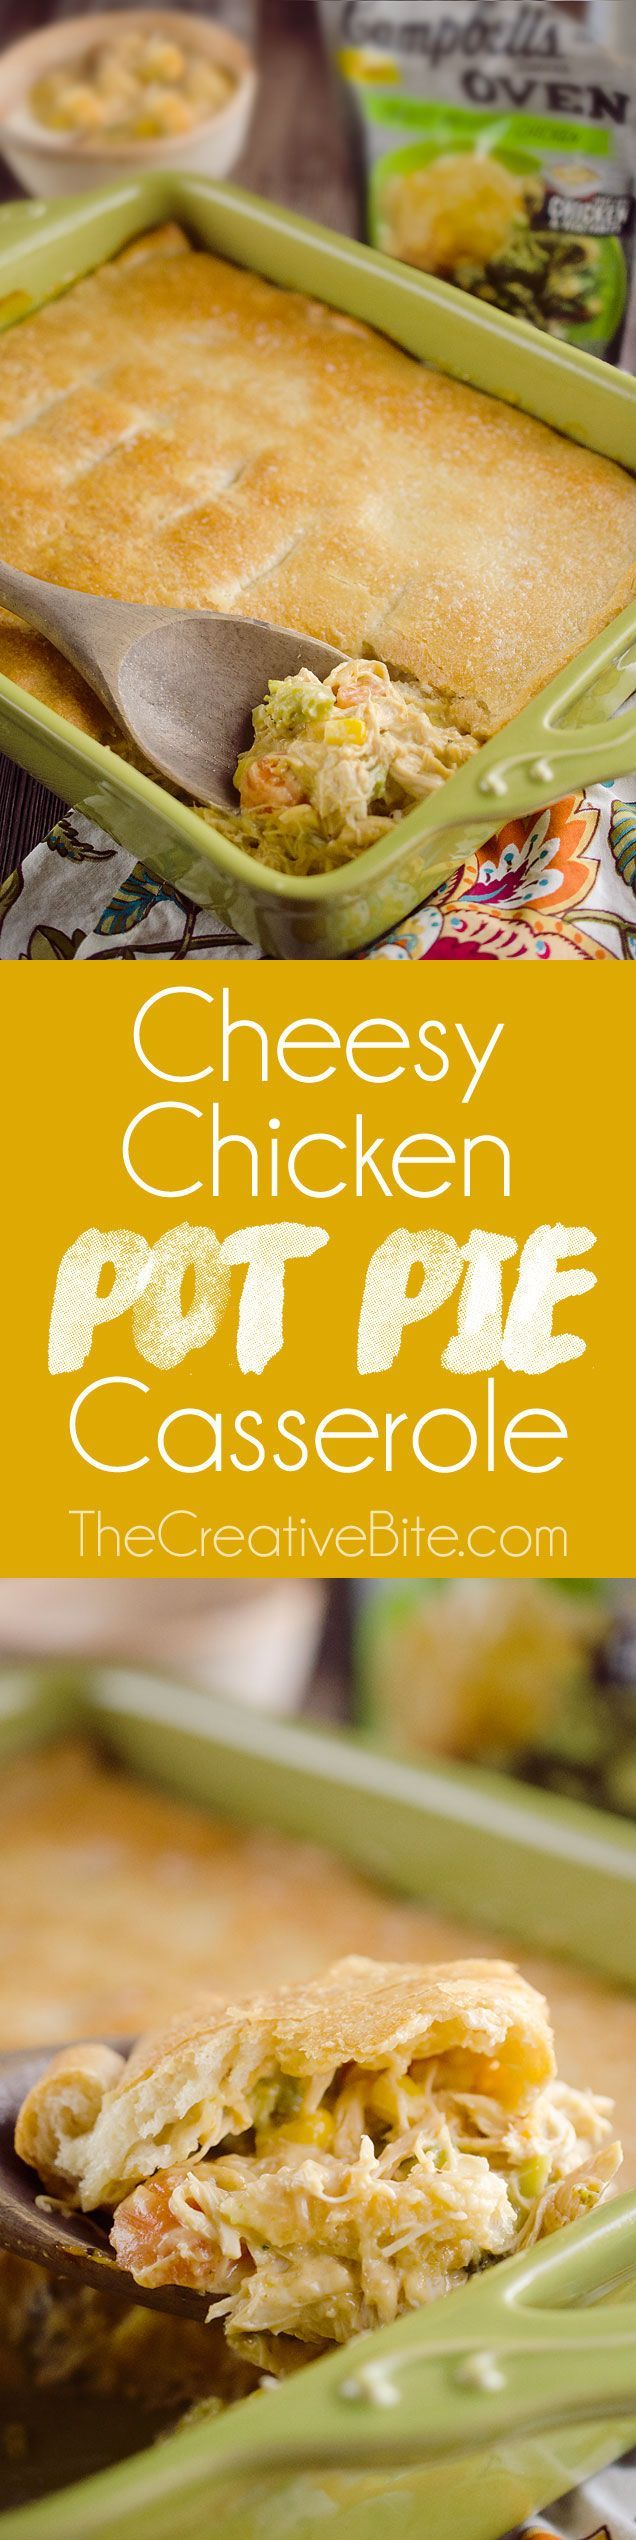 Cheesy Chicken Pot Pie Casserole is a quick and easy 20 minute weeknight dinner idea with only 5 ingredients! Creamy chicken and vegetables with Campbell's Cheesy Broccoli Chicken Oven Sauce are topped with a flaky crescent crust for a delicious recipe th